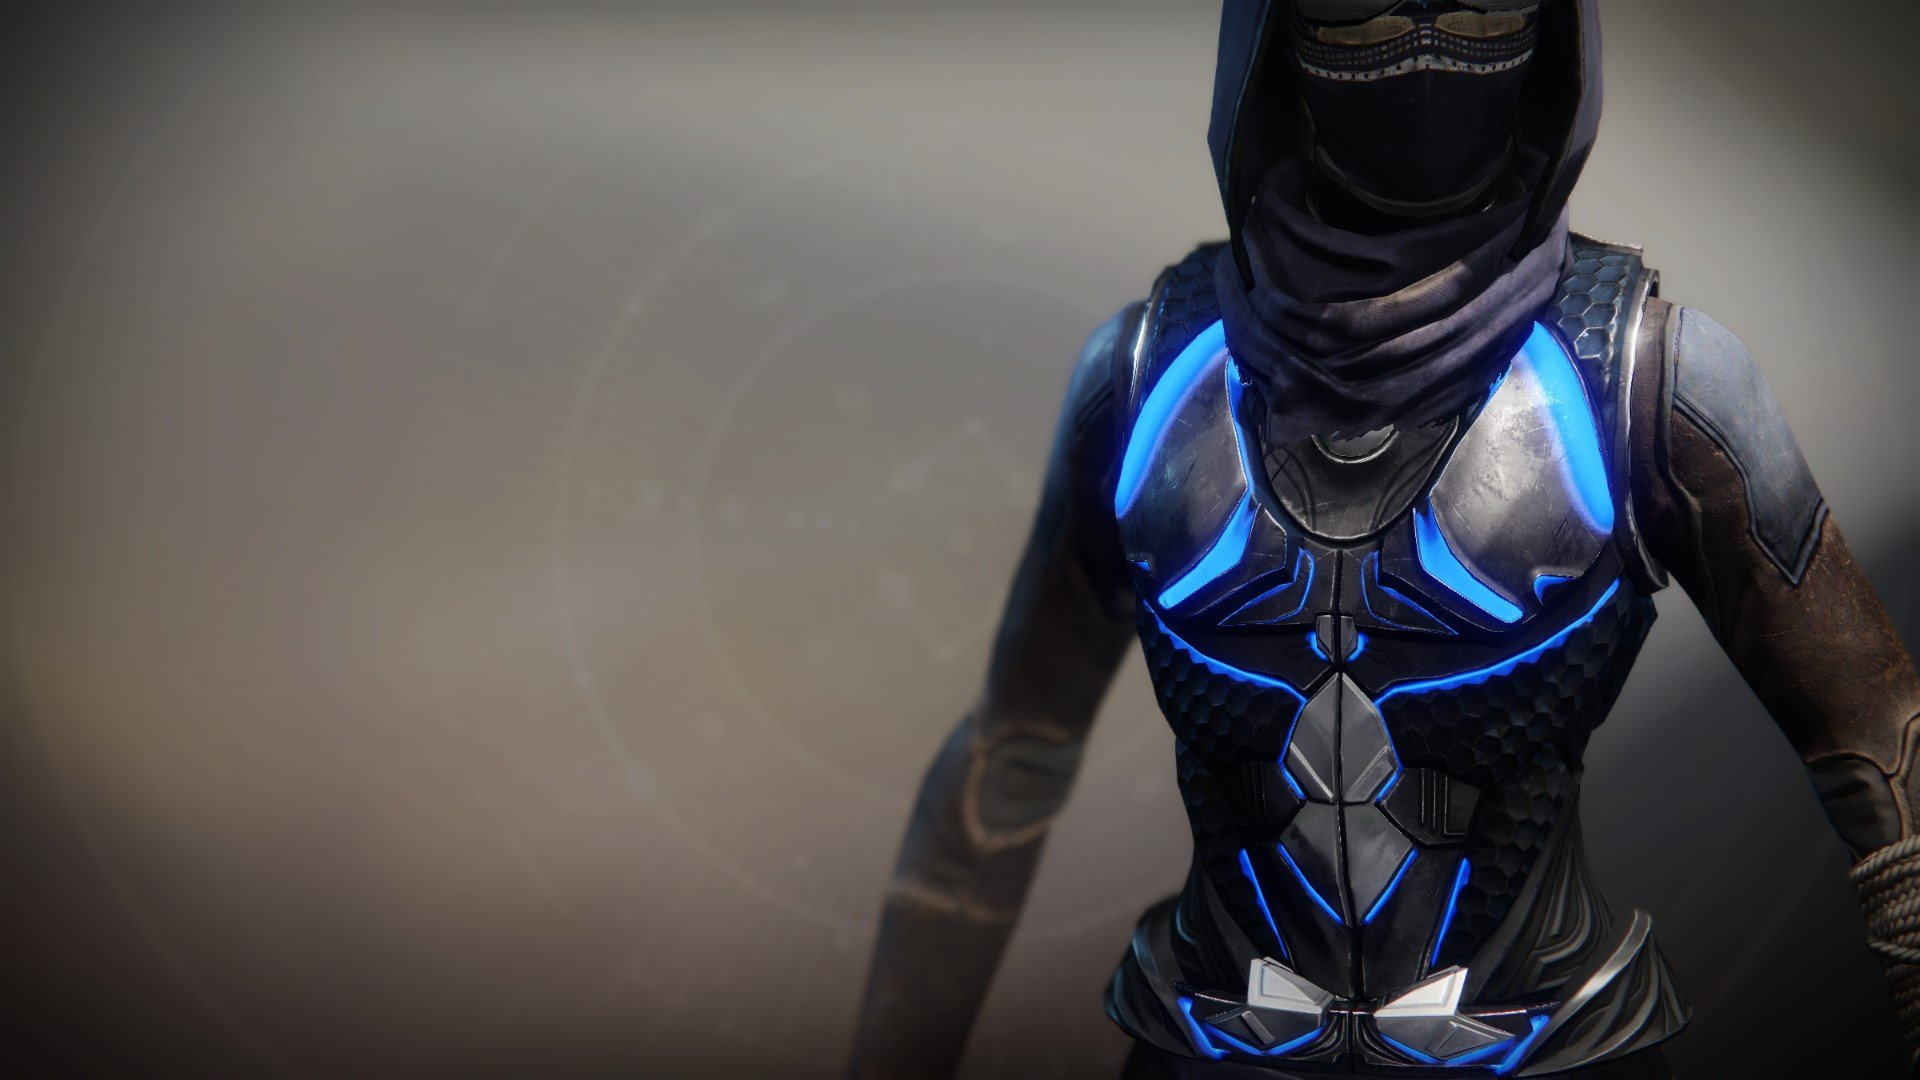 An in-game render of the Raiju's Harness.